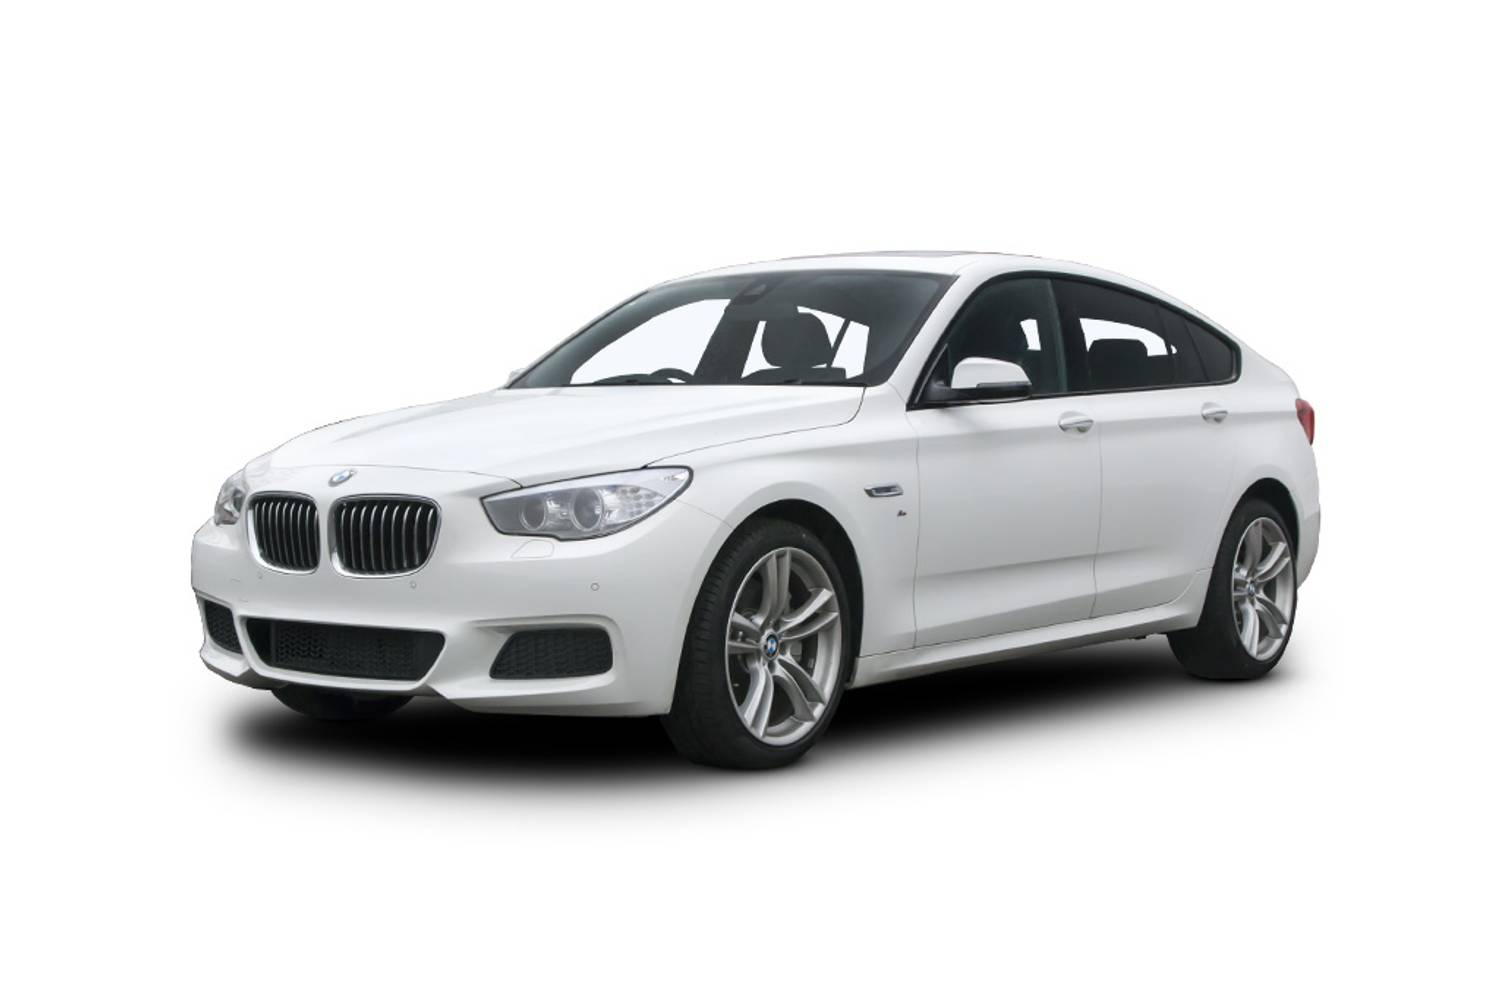 BMW 5 Series Gran Turismo Hatchback 5dr Step Auto